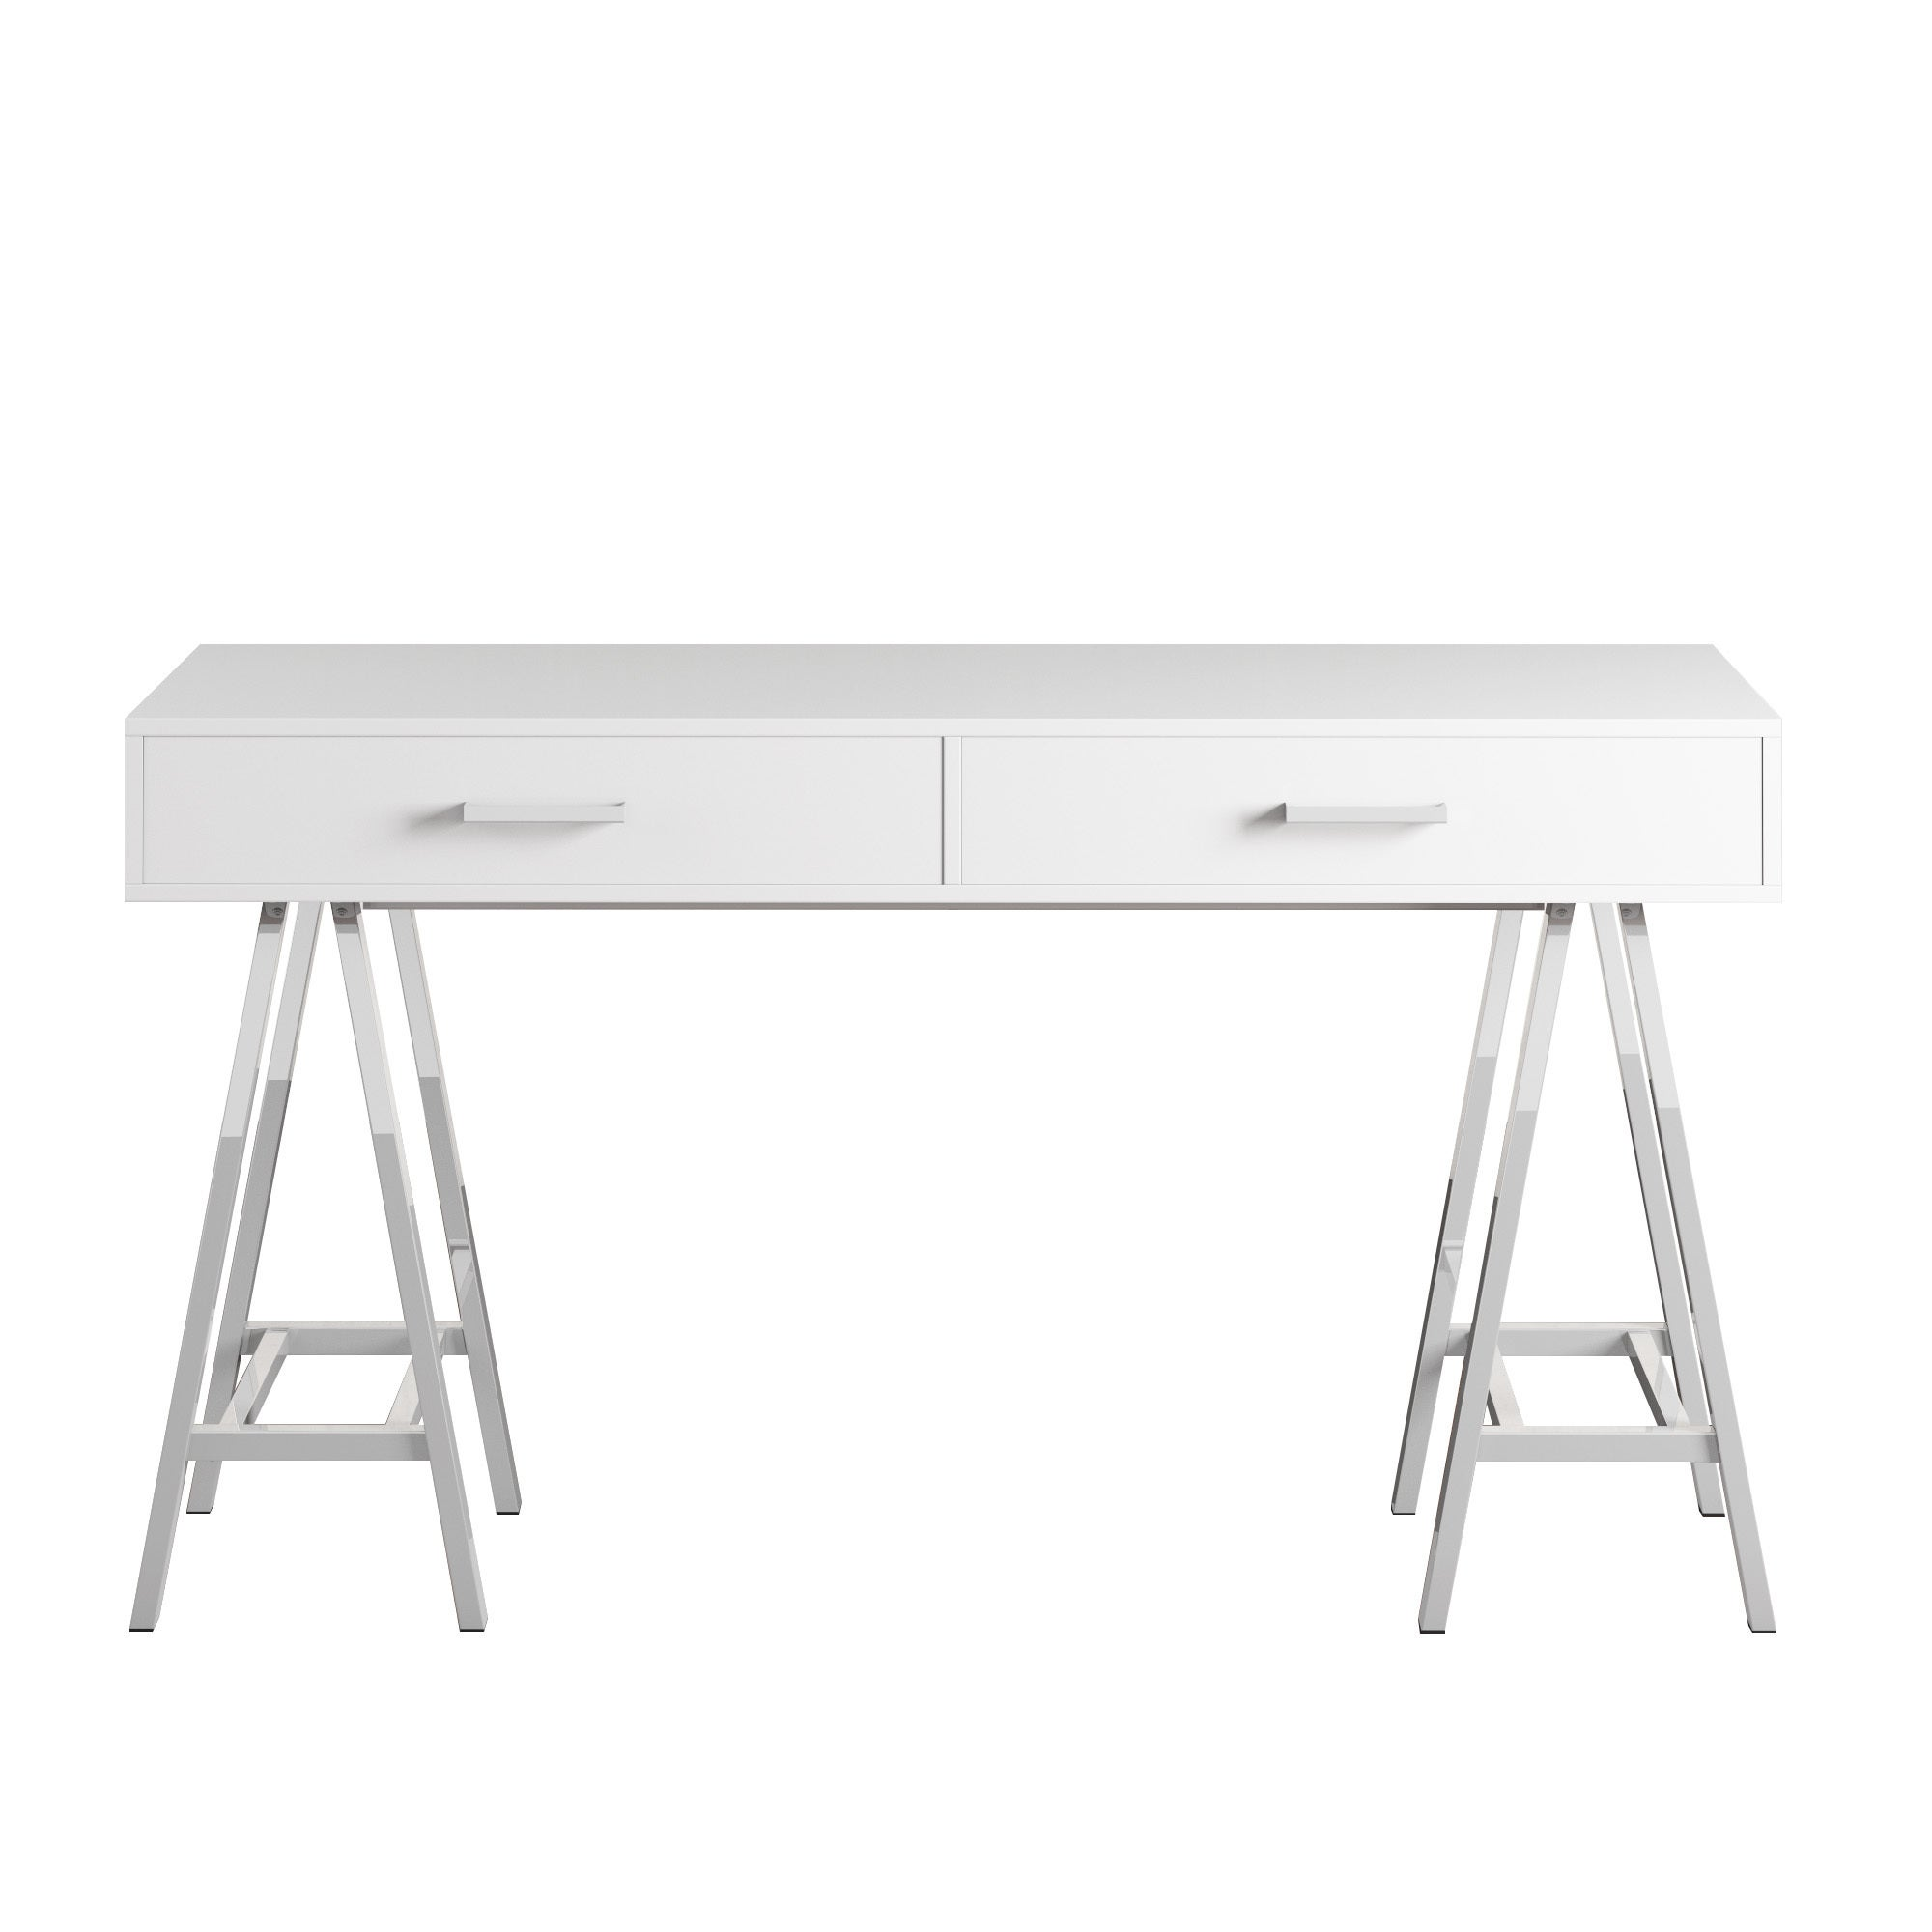 Neron 2-Drawer Chrome Leg Sawhorse Desk by INSPIRE Q - Free Shipping Today  - Overstock.com - 20547445